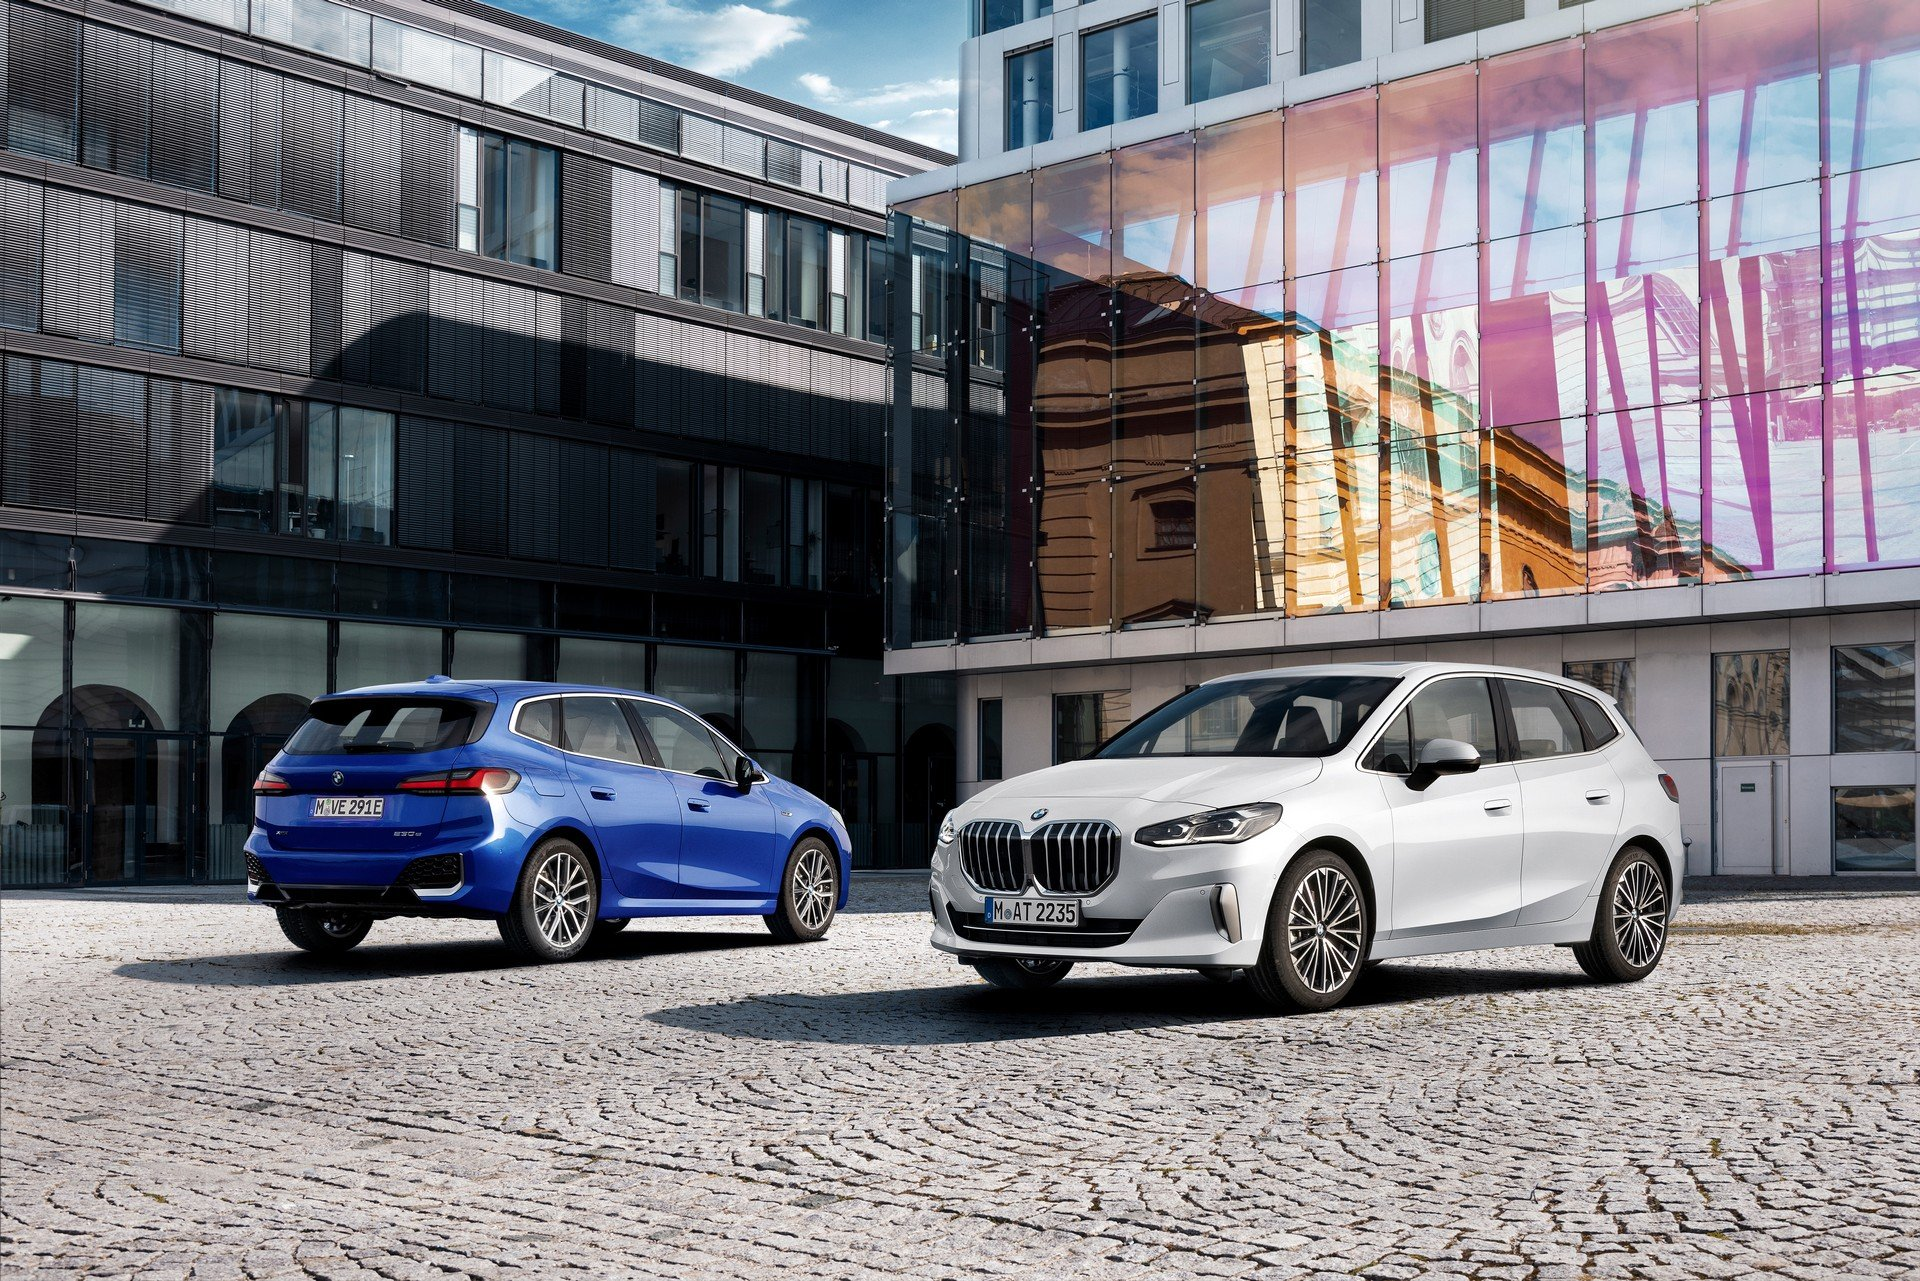 BMW is about to launch a new generation of Active Tourer products, following the success of the 2-Series 1